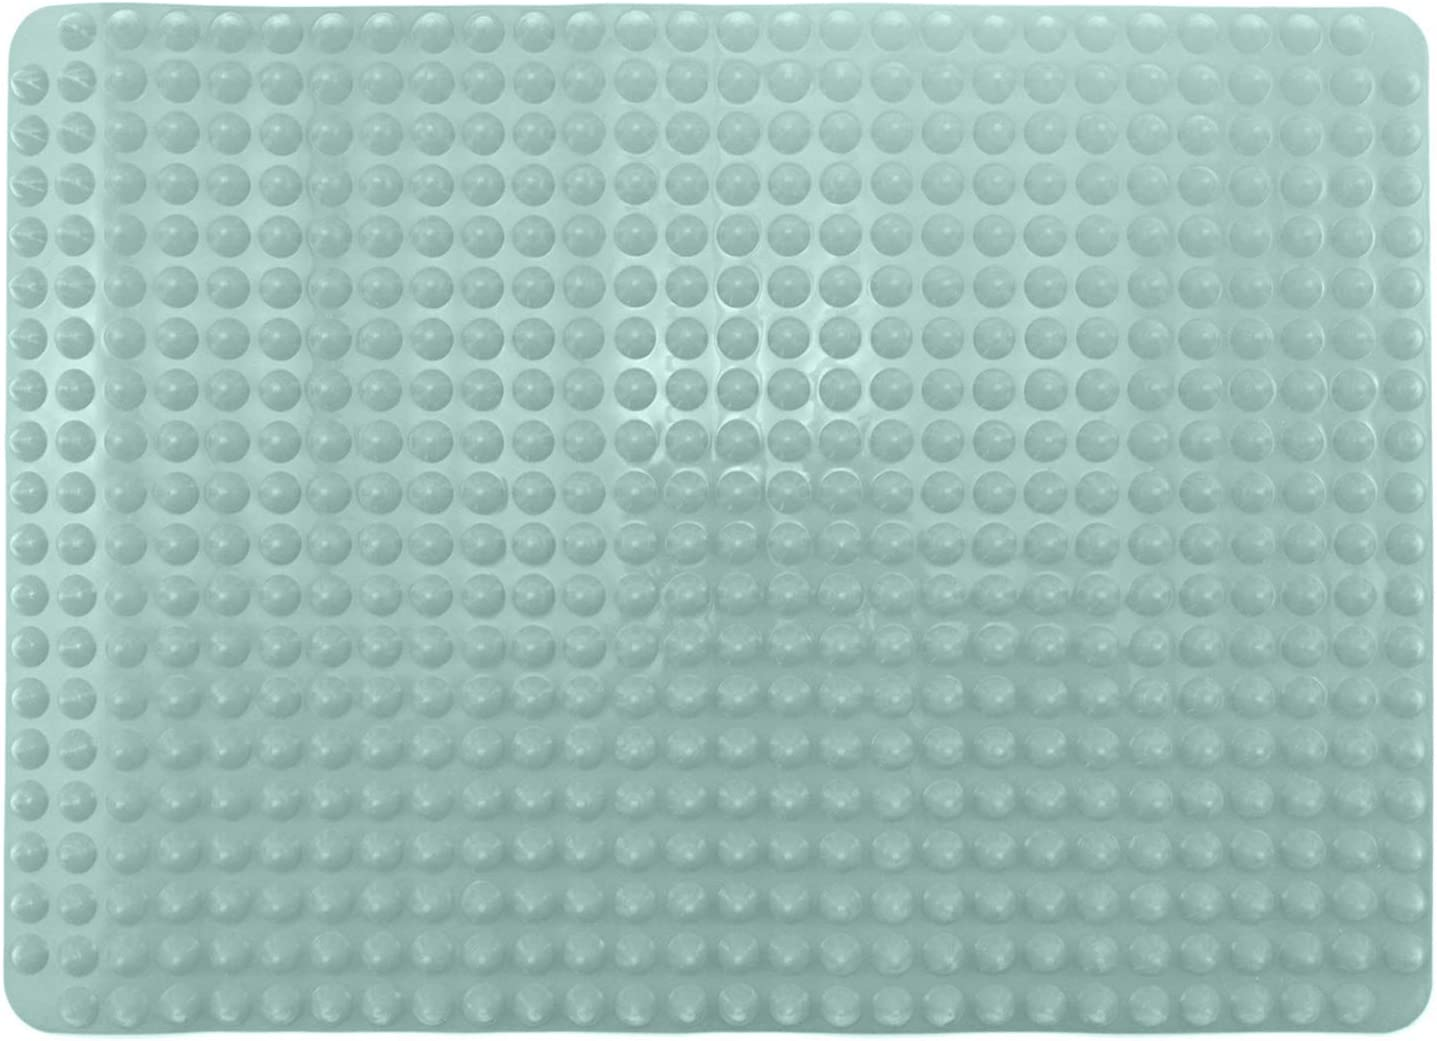 """EHZ Silicone Baking Mat Non Stick Oven Baking Tray Mat Food Safe Oven Protector Liner for Toaster Oven, Sheets, Trays, Pans, Baking, Cooking - 16"""" x 11.4"""" (Aqua)"""